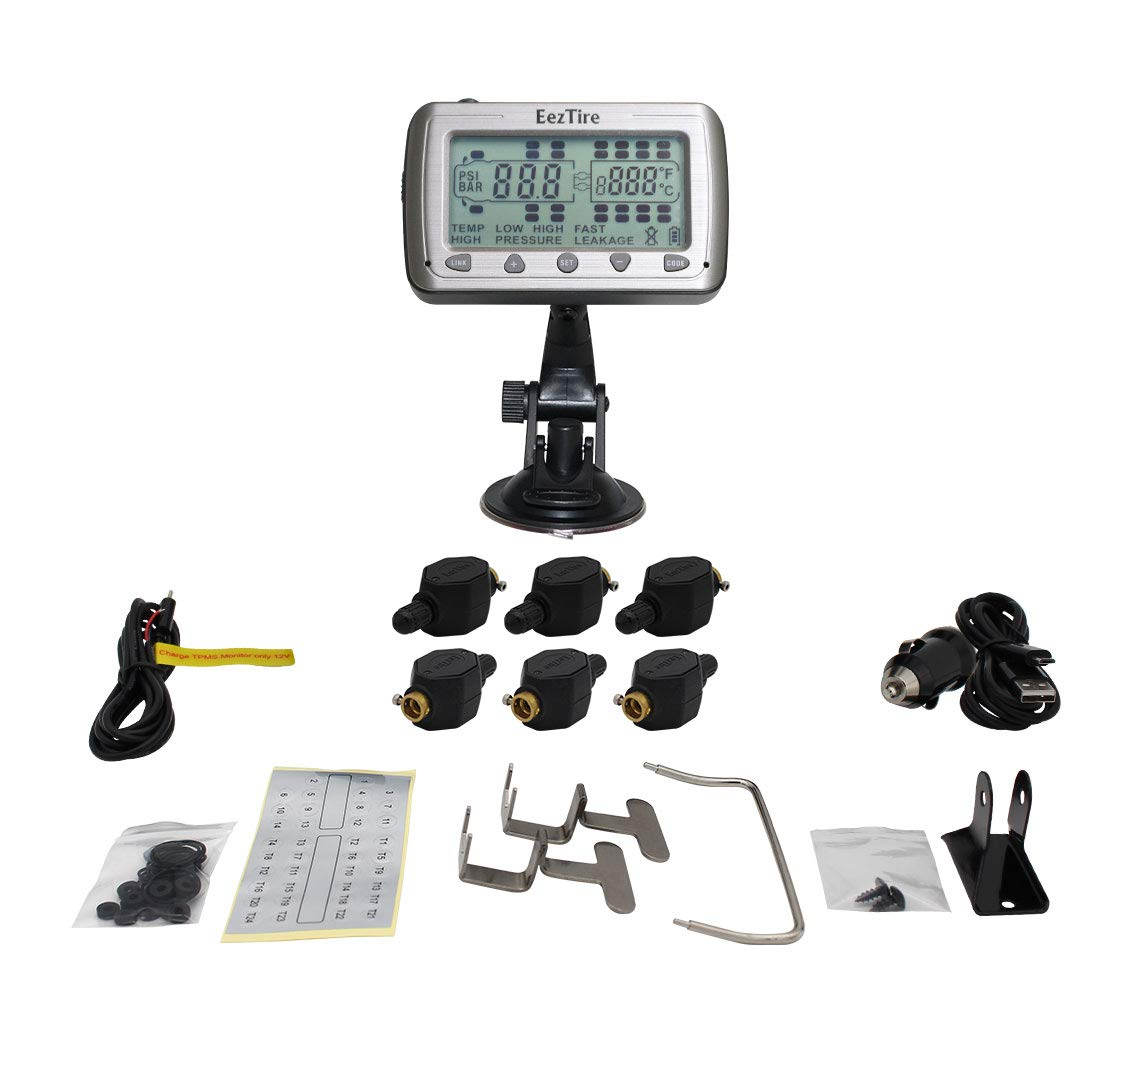 EEZTire-TPMS Real Time/24x7 Tire Pressure Monitoring System (TPMS6FT) - 6  Flow-Through Sensors, incl  3-Year Warranty